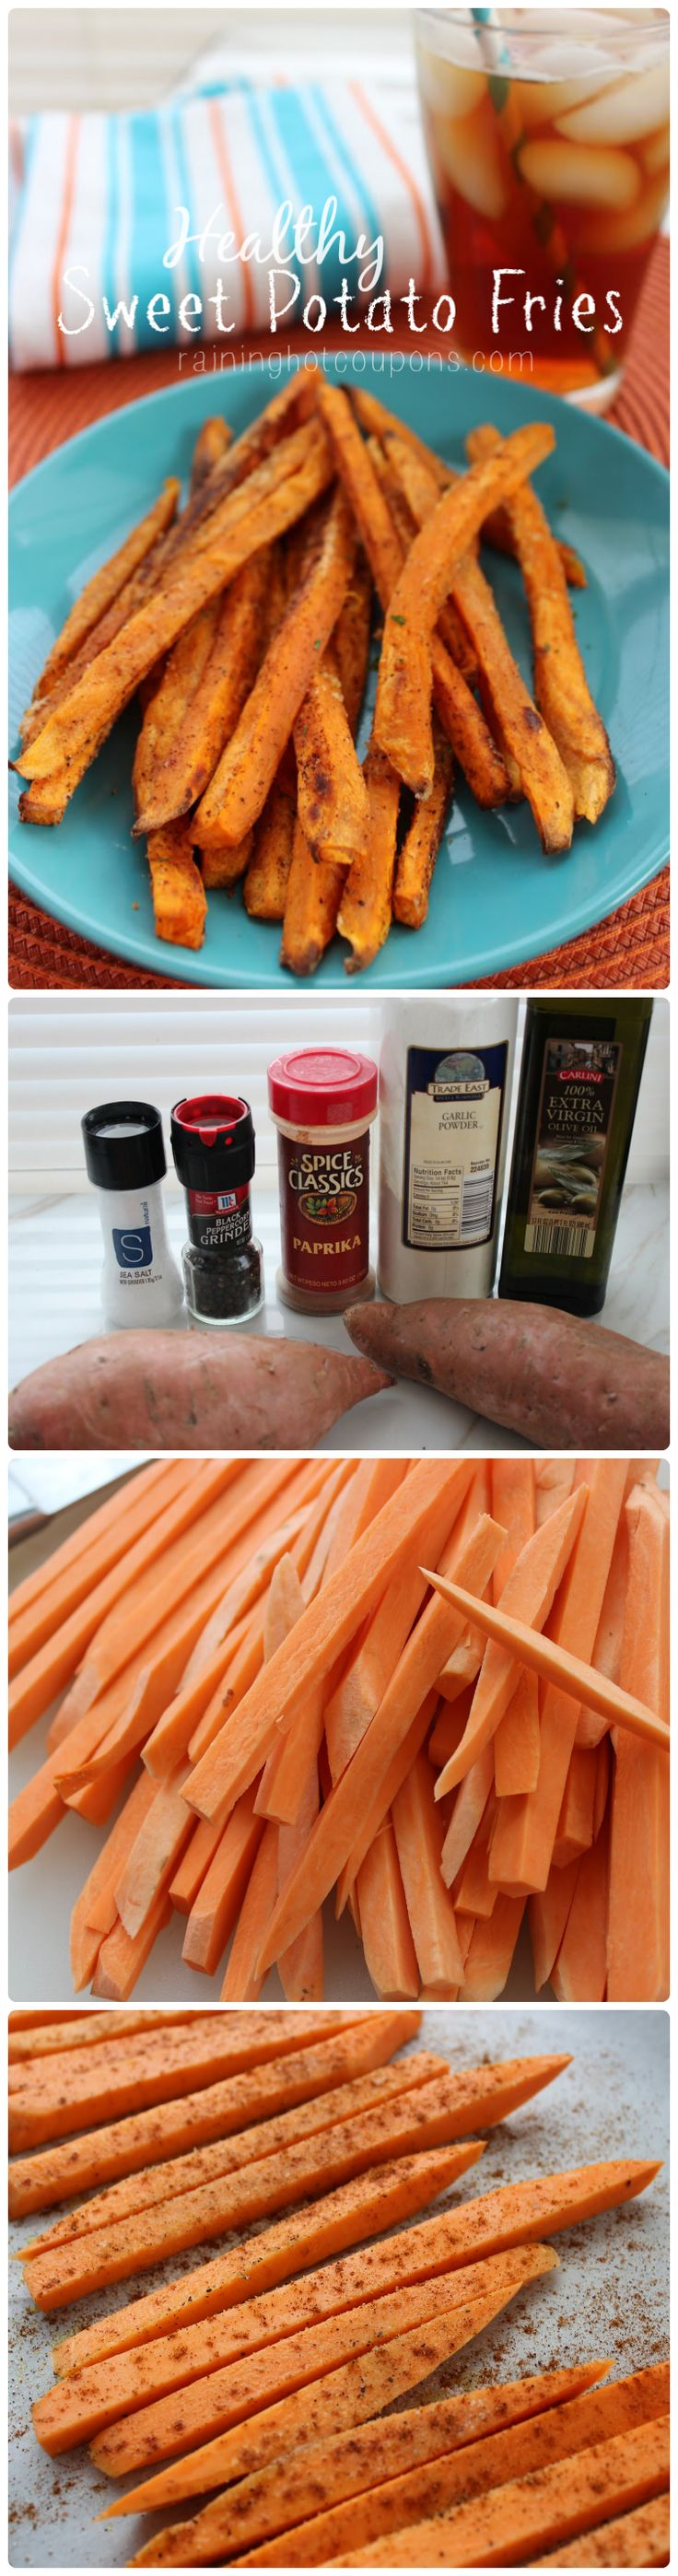 Sweet Potato Fries (Super Healthy!)